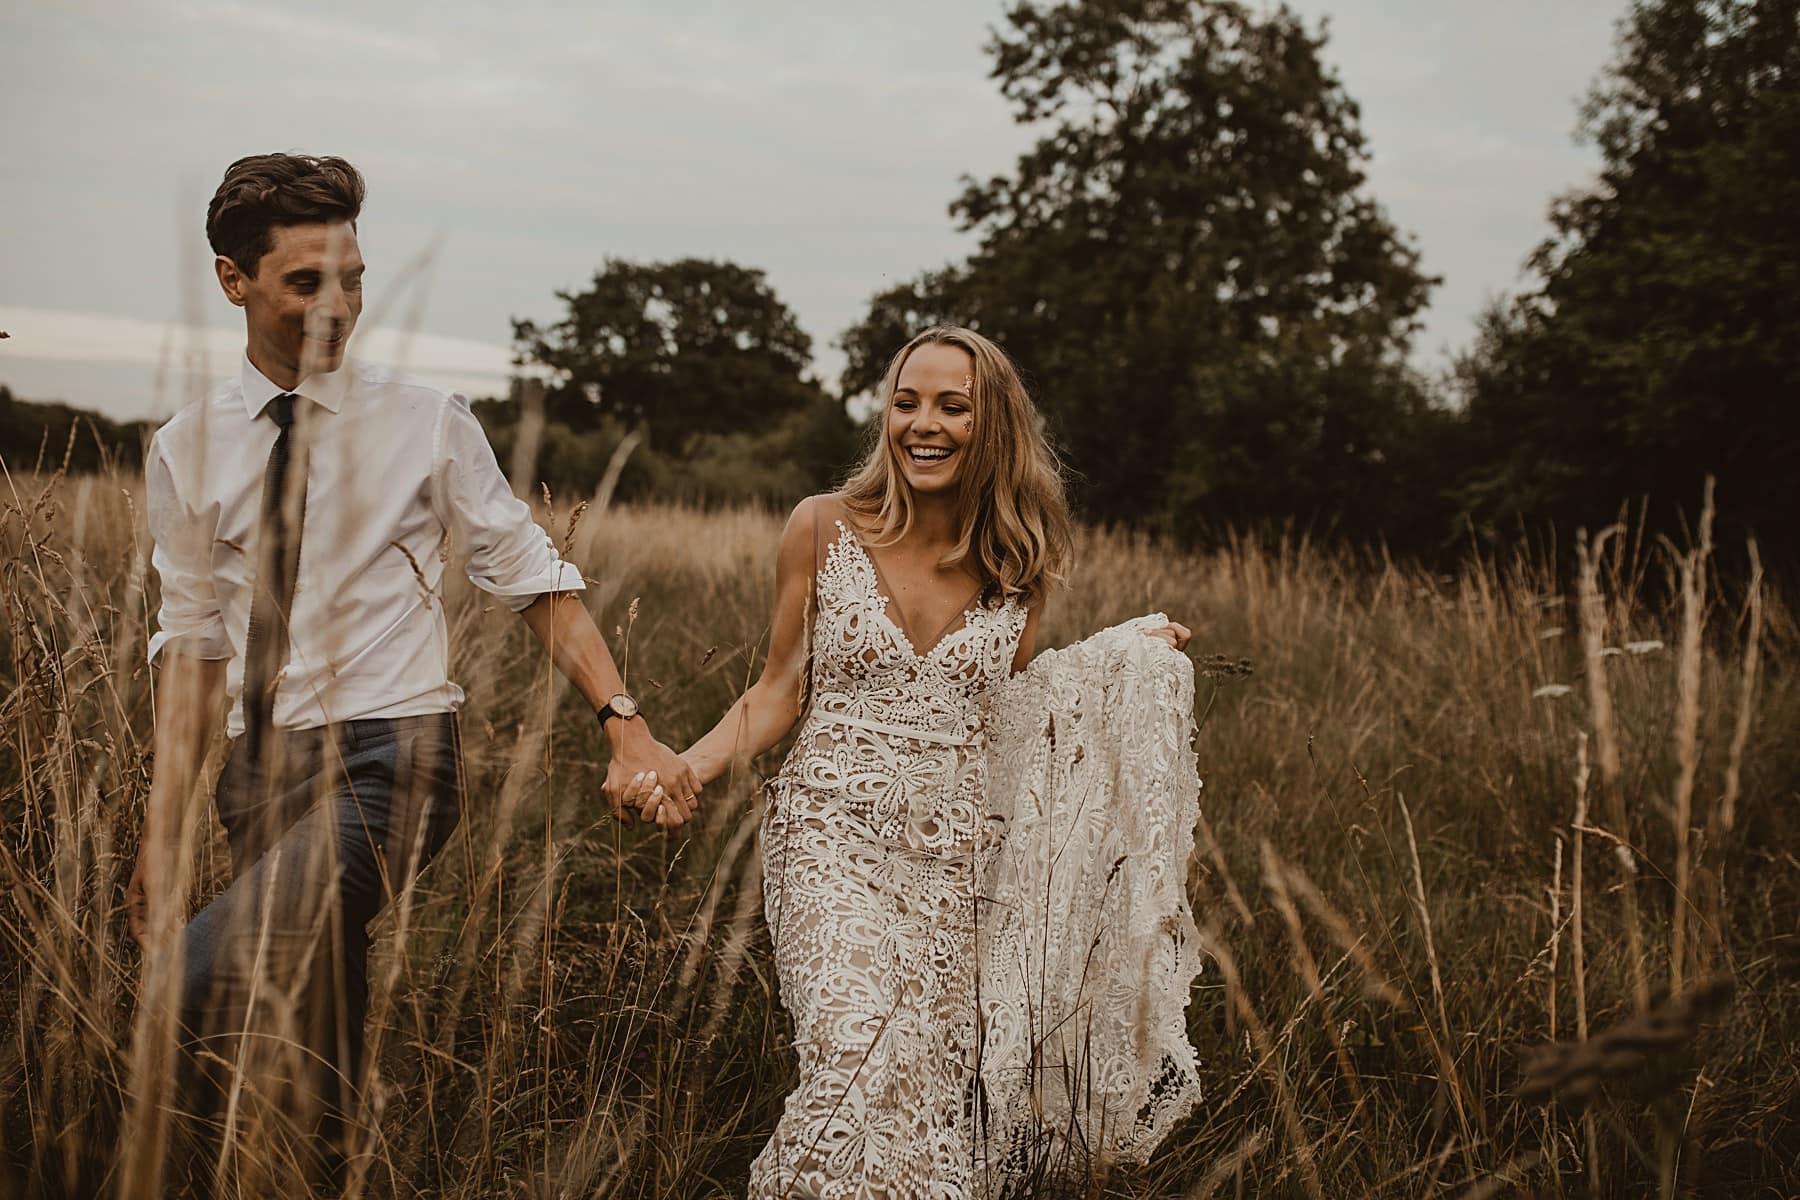 Bride and Groom laughing and walking through meadow